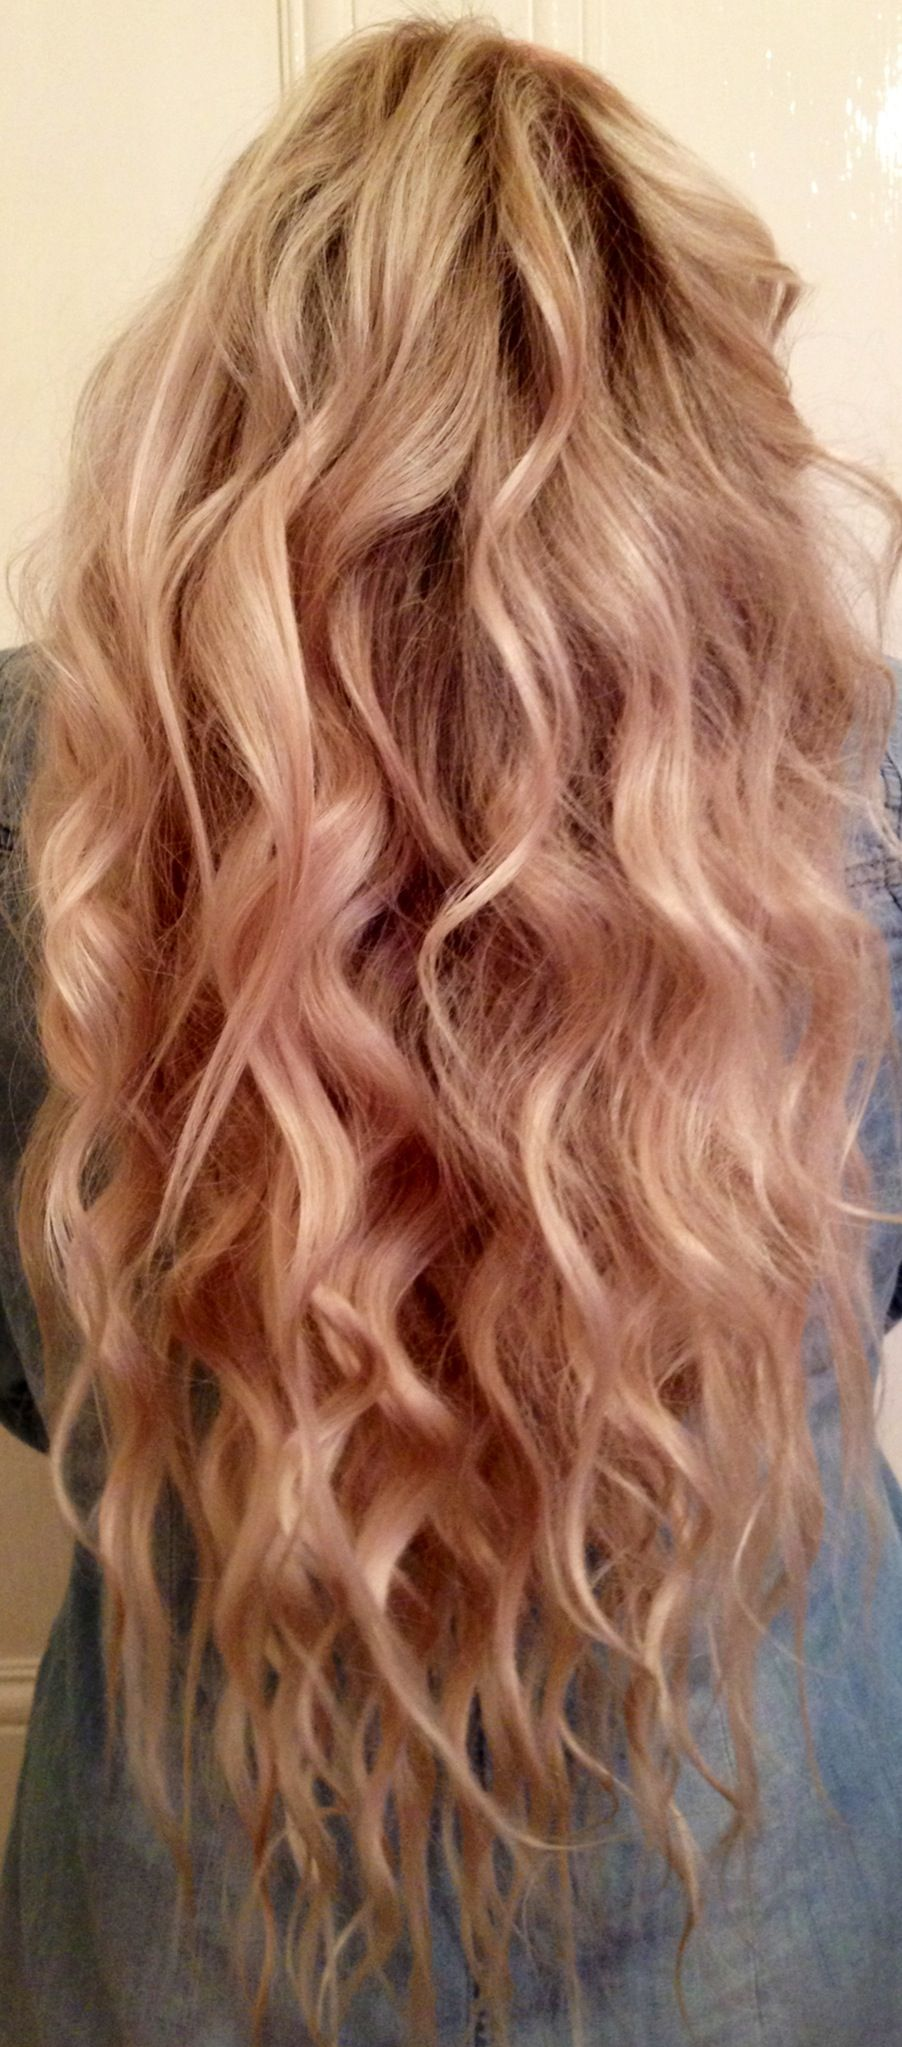 Waves - curly hair, long curls, curled using a wand and shaken messy. Love it!